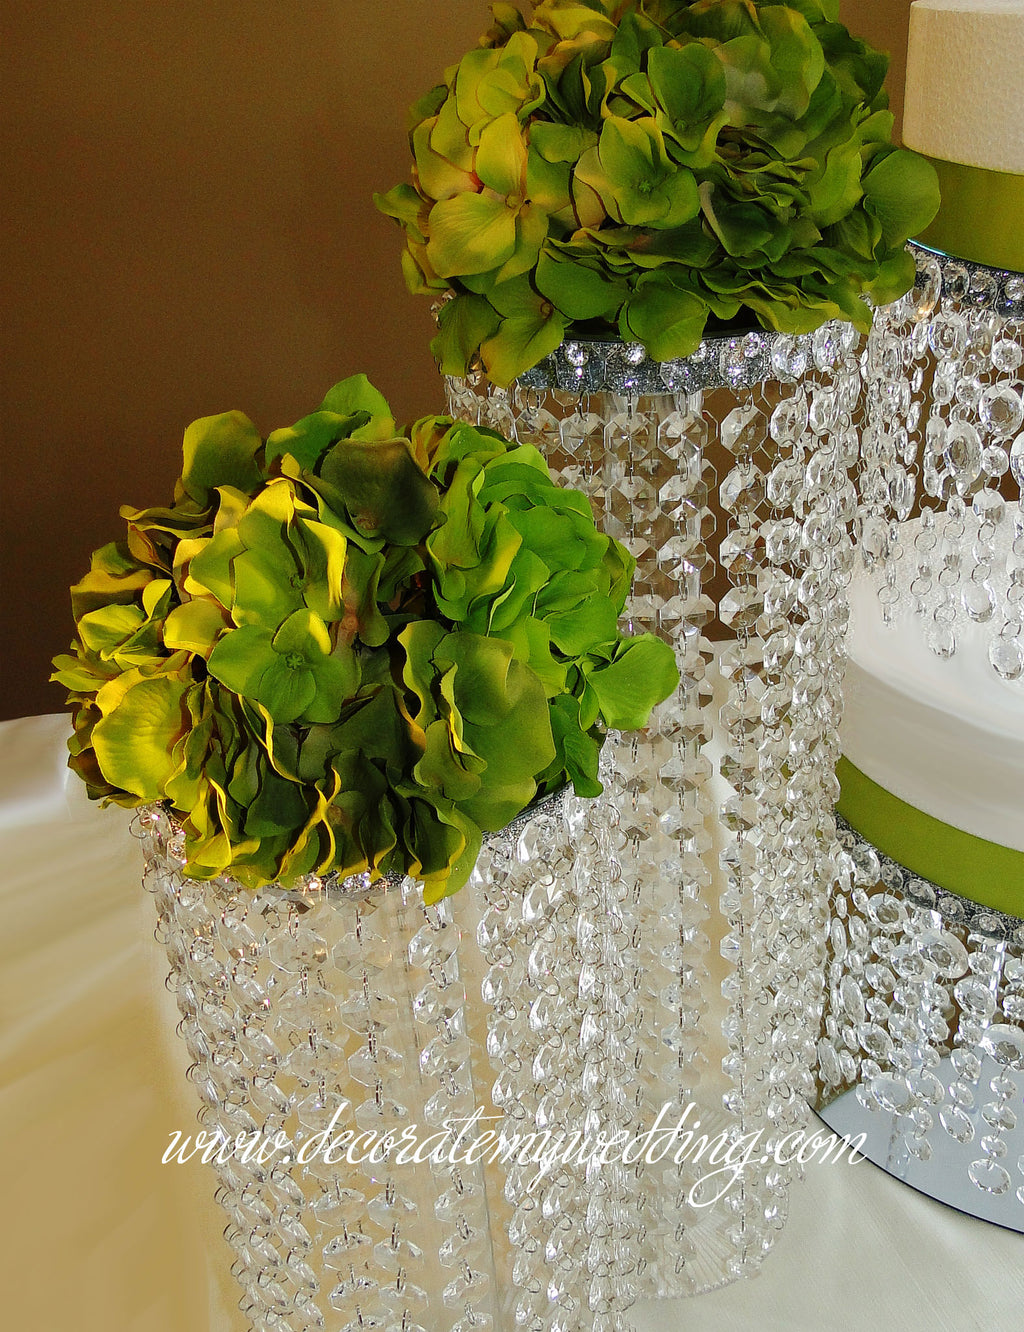 These beaded tower buffet decorations will add beauty, interest, and height to your buffet table.